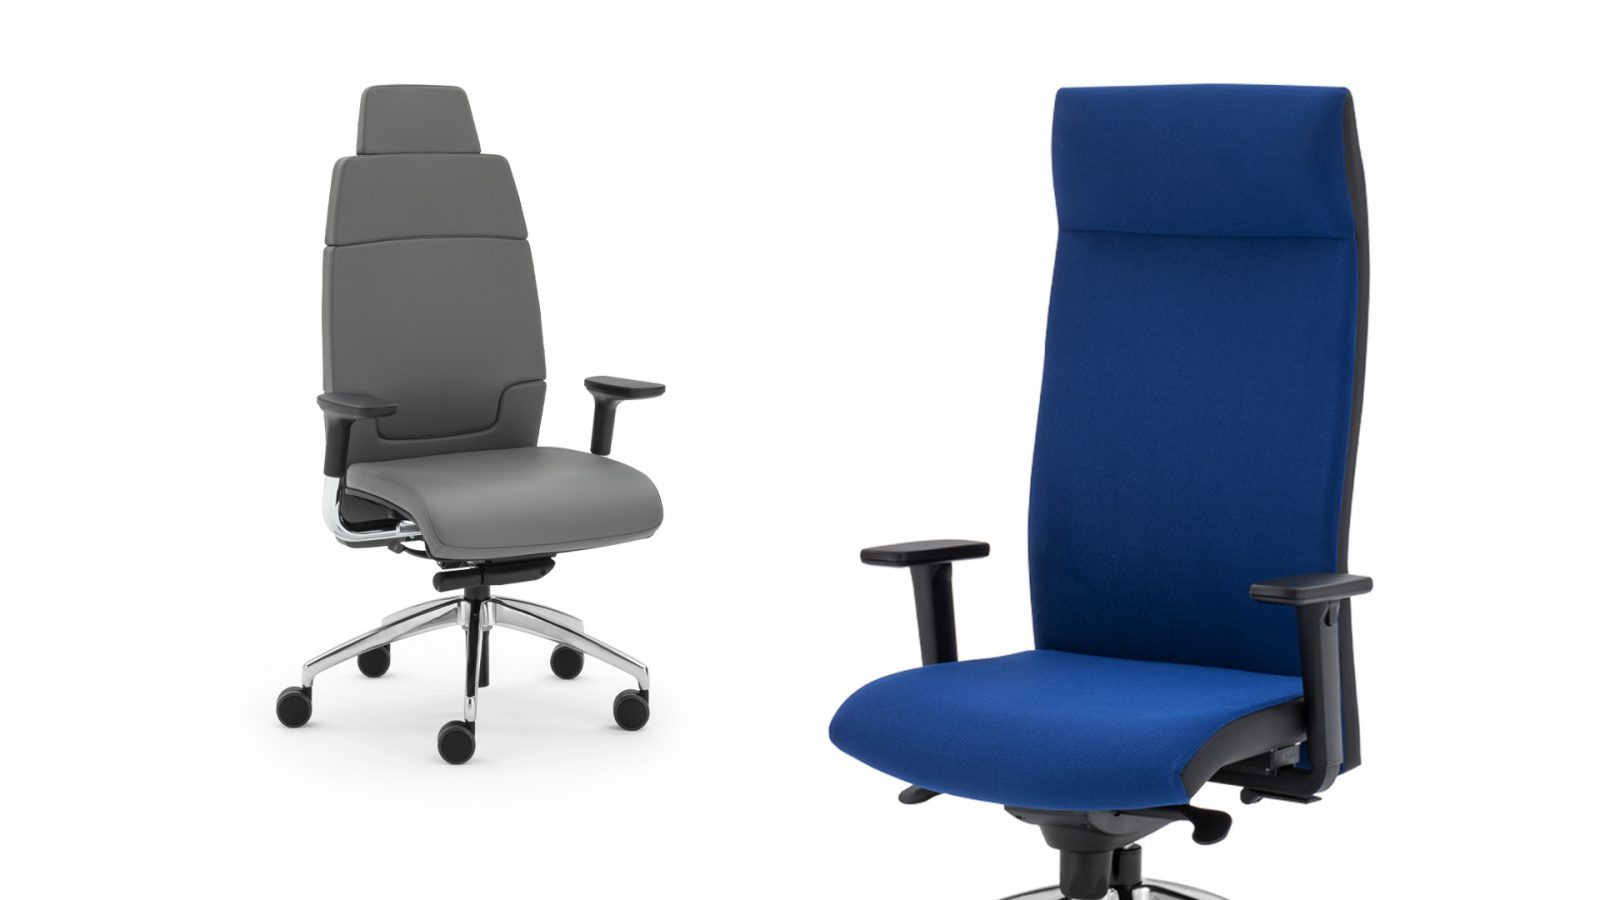 High-executive chairs